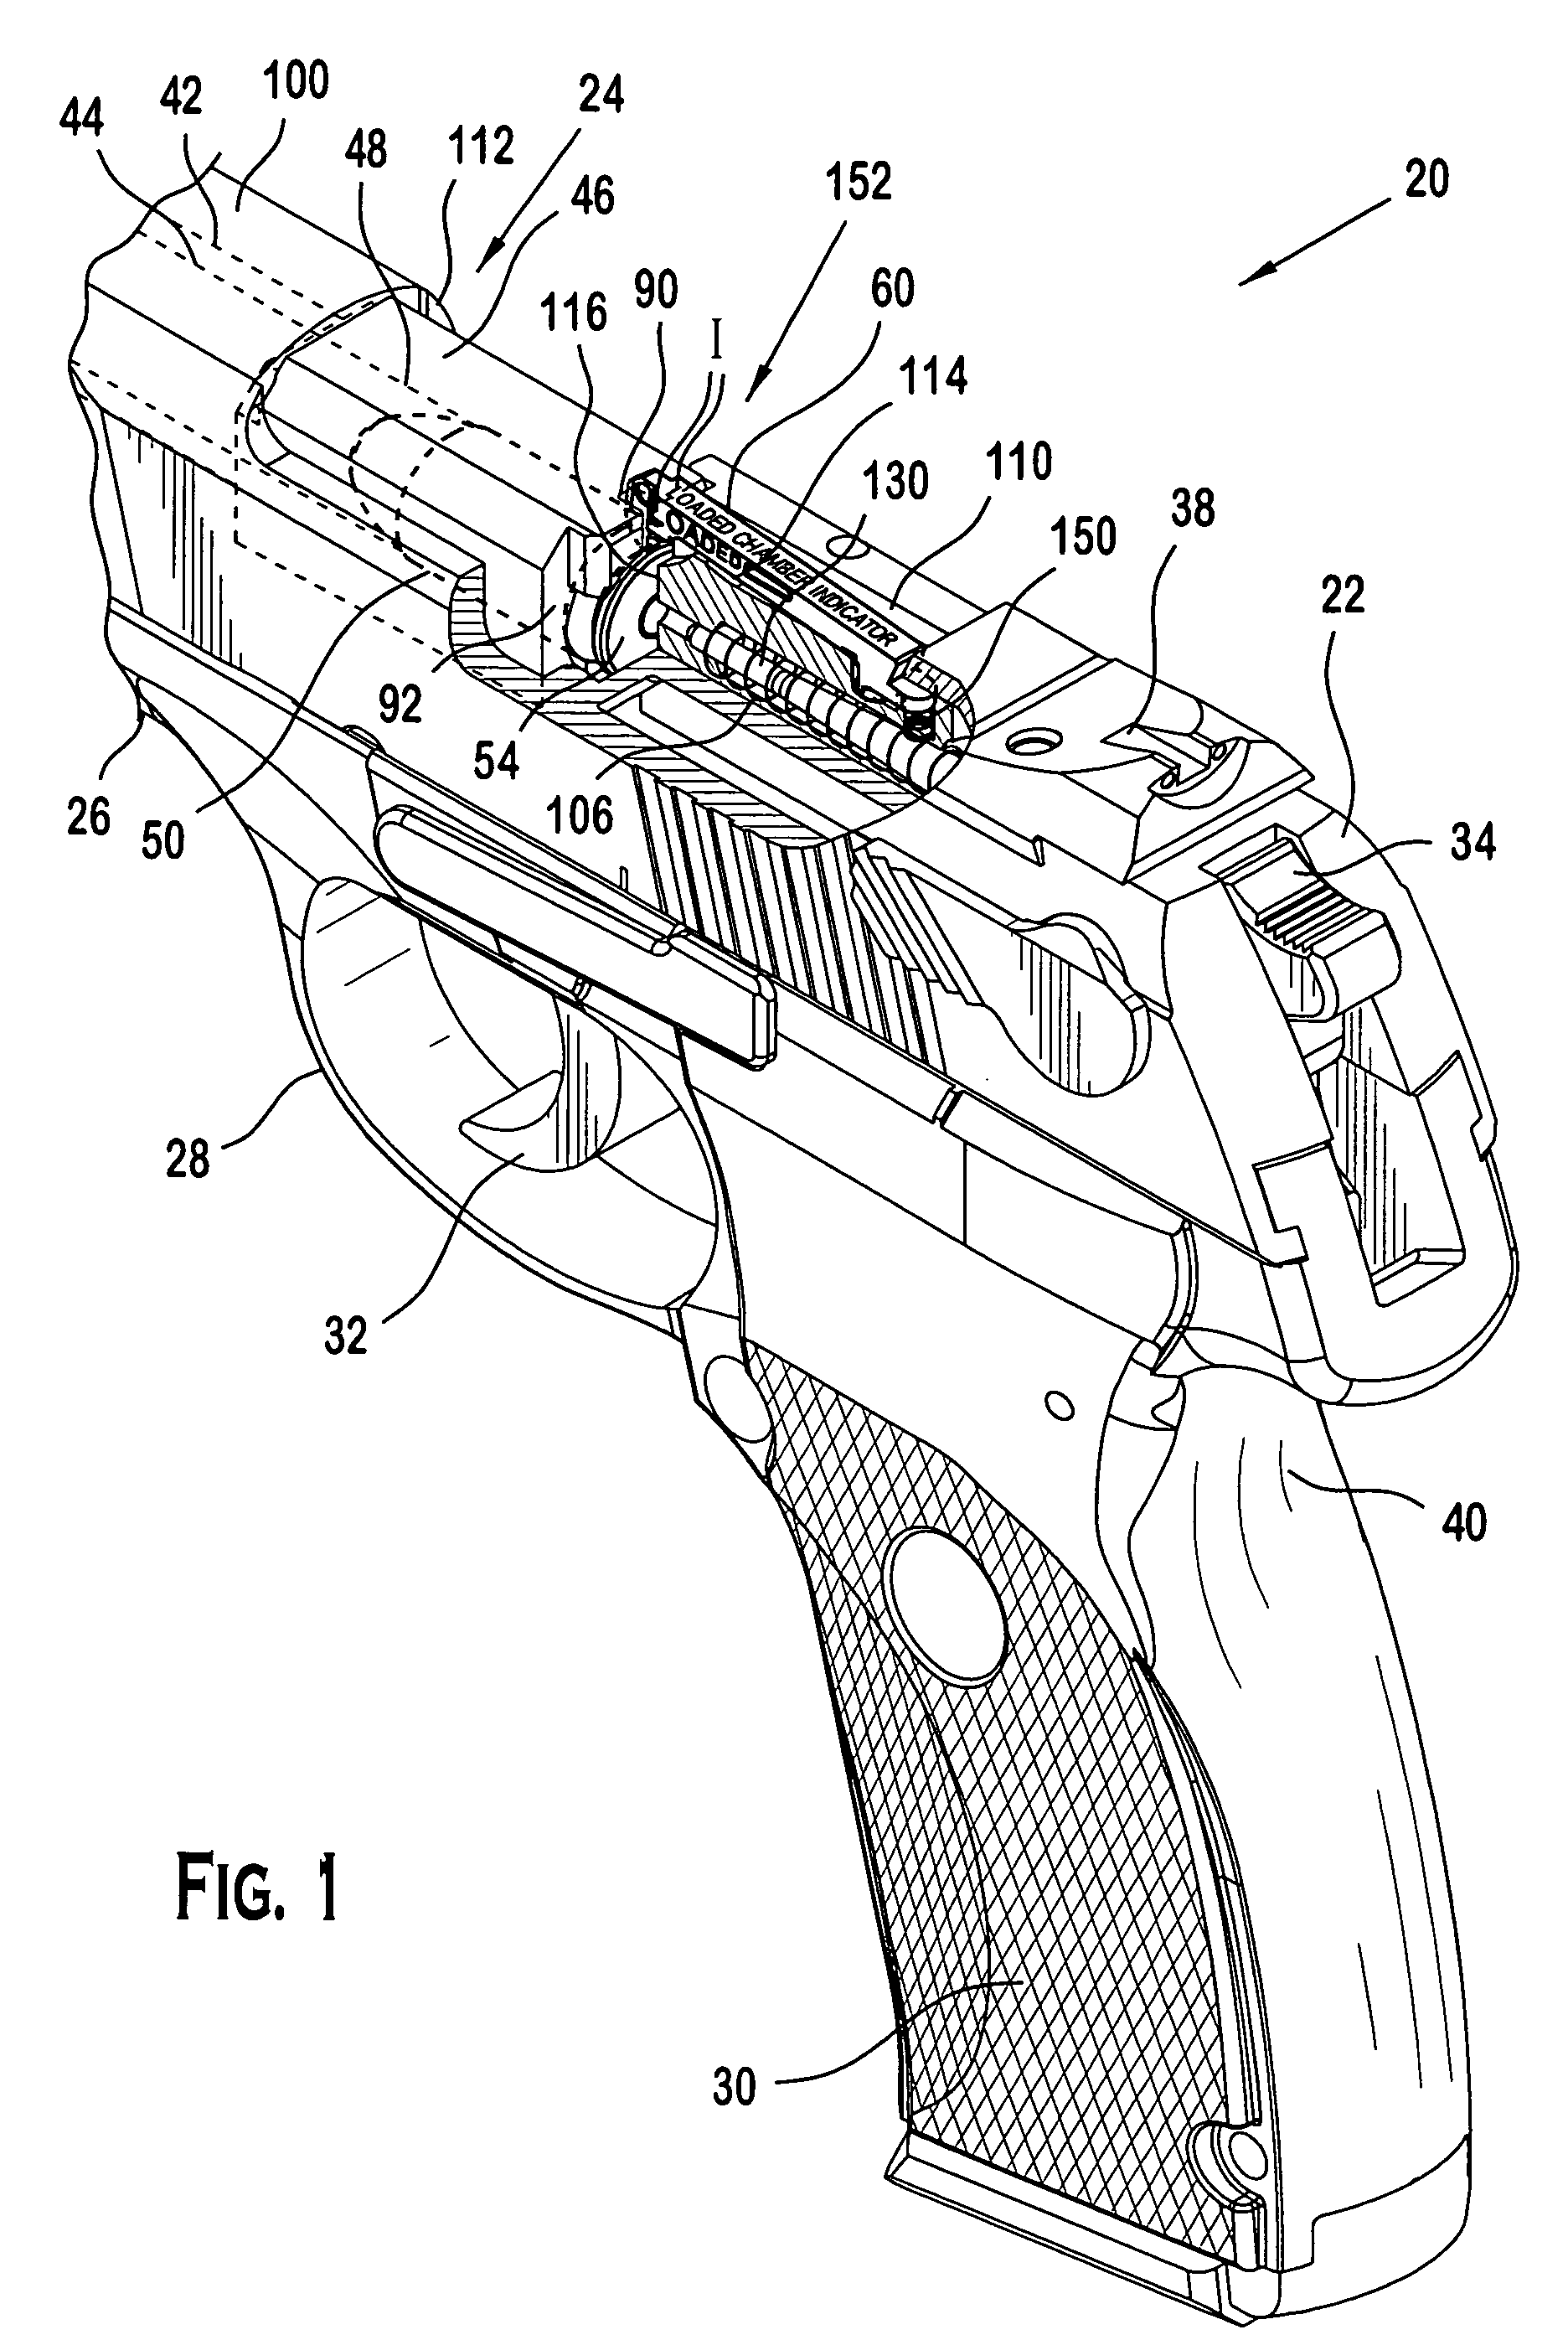 patent us7305786 - pistol with loaded chamber indicator